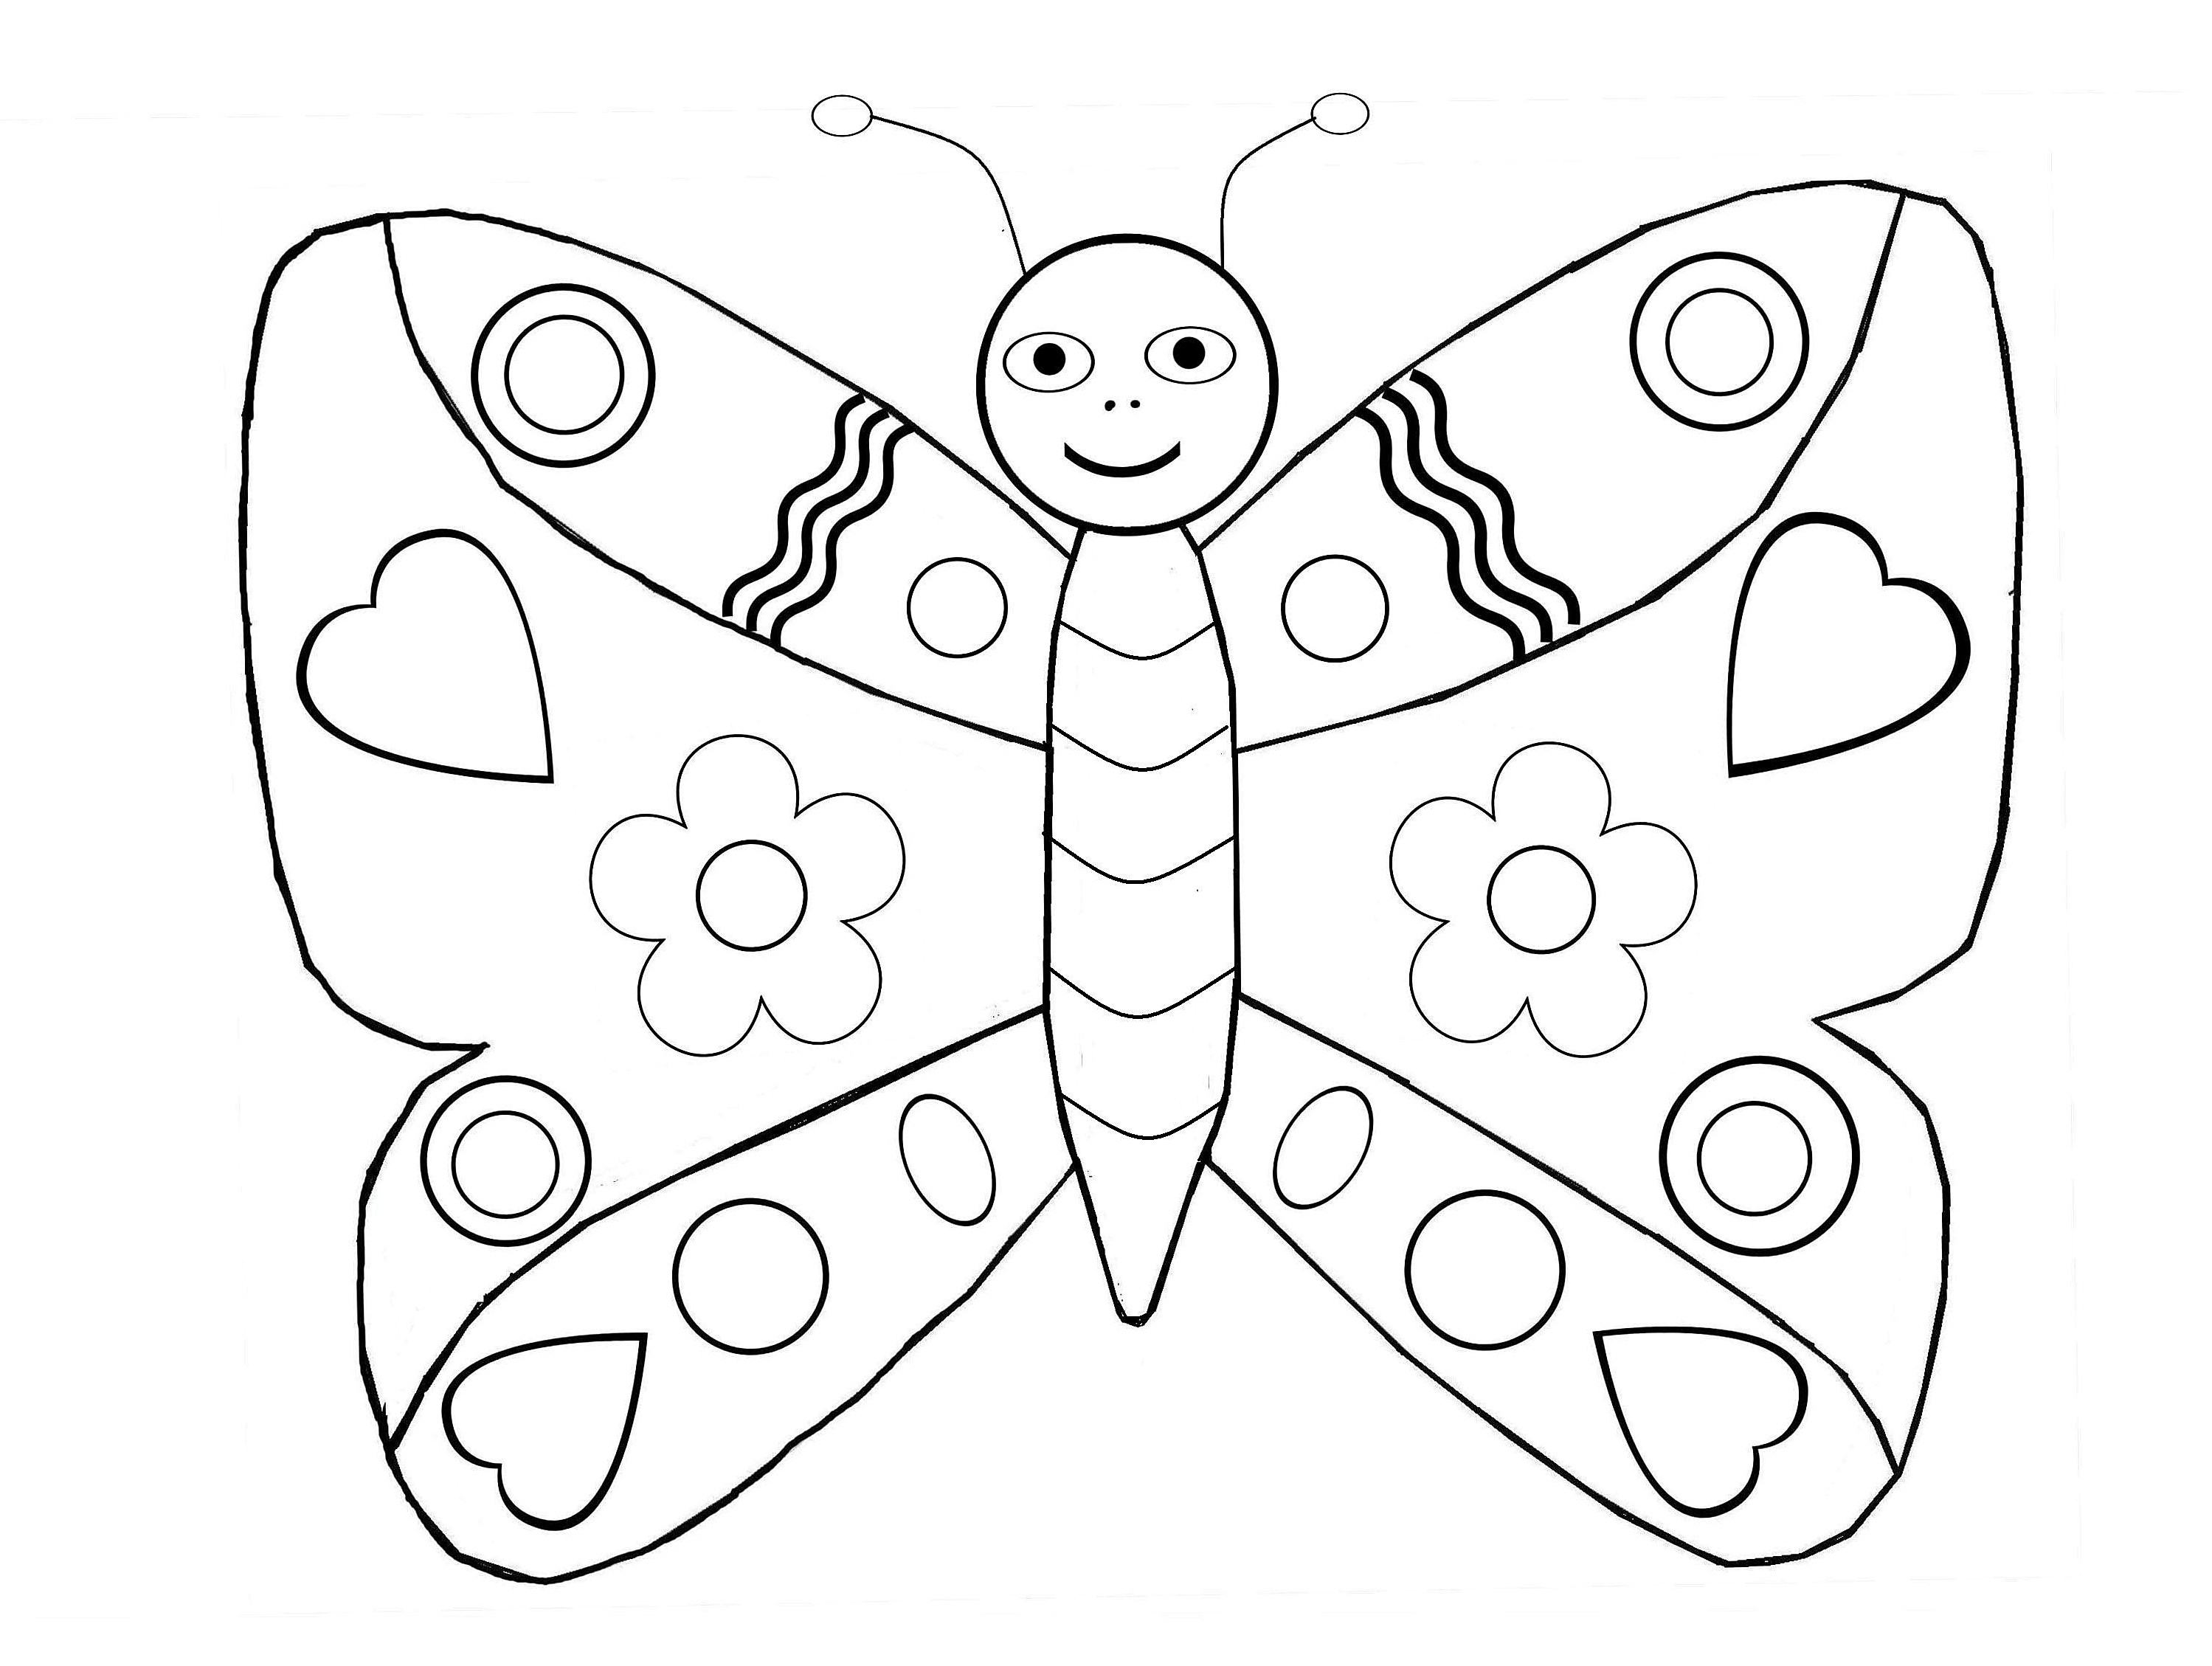 simple symetric butterfly insects coloring pages for kids to